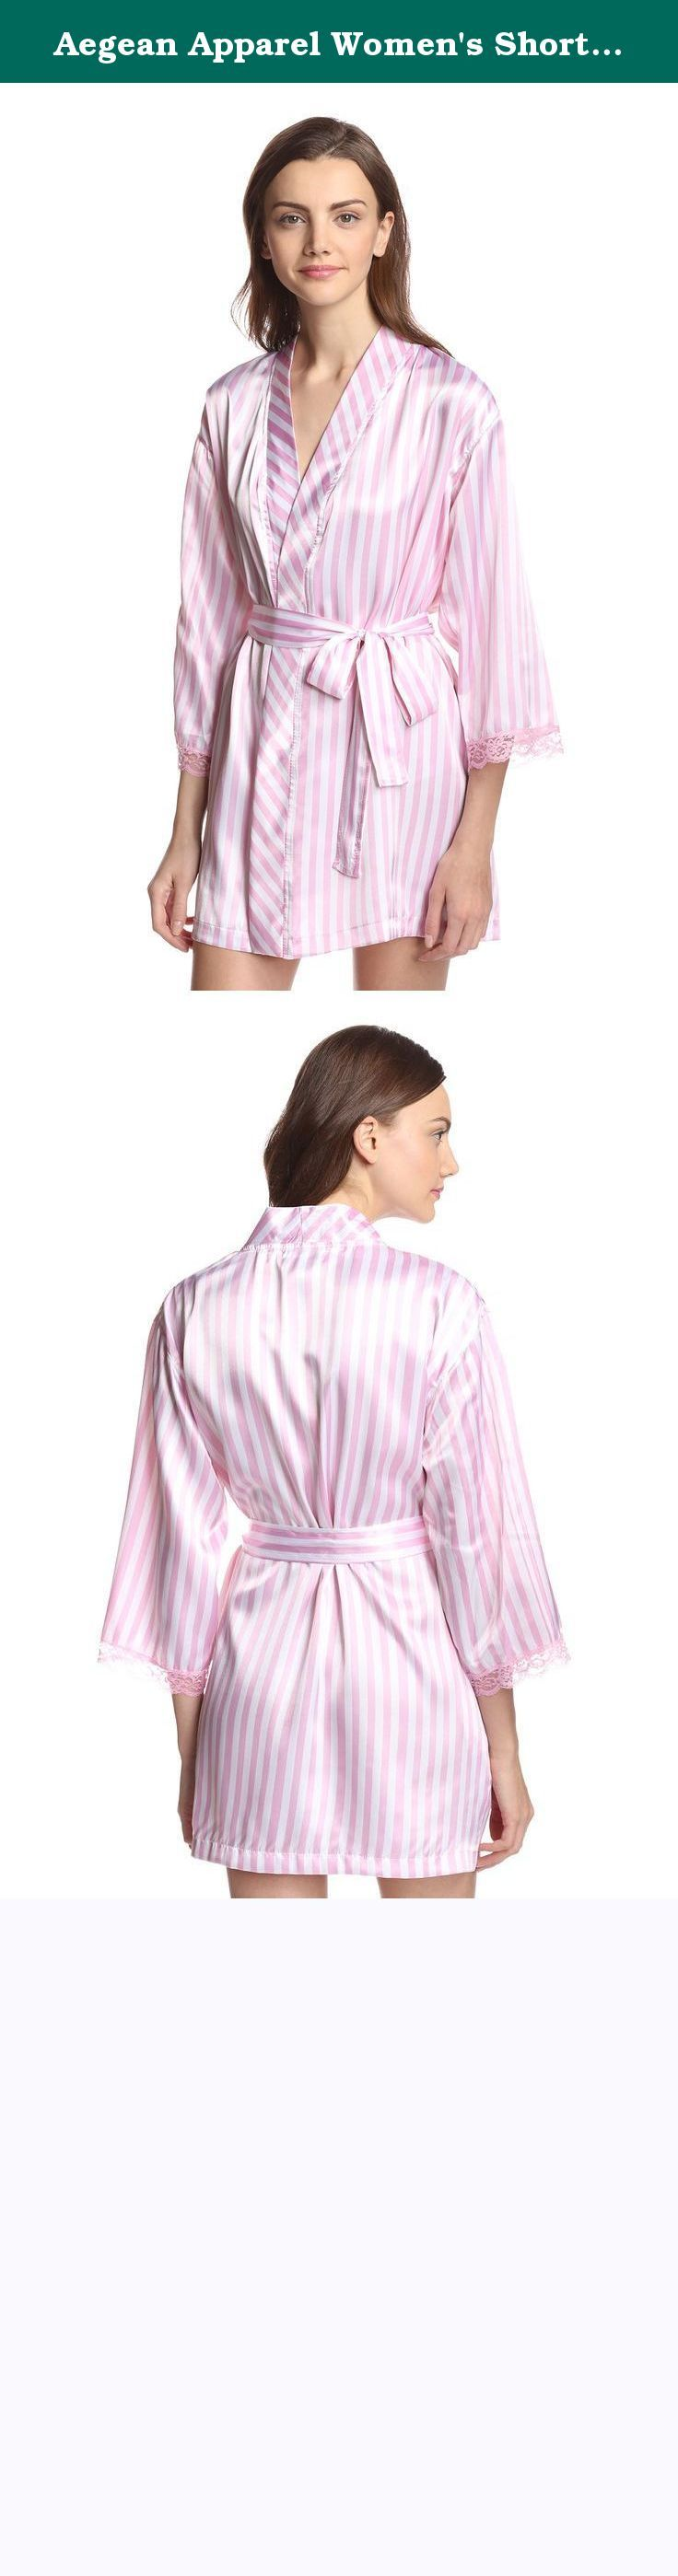 Aegean Apparel Women's Short Kimono Seafolly Stripe Printed Satin Robe M Pink. Classic short satin robe with removable tie belt, cropped sleeves and lace trim, on-seam pockets.